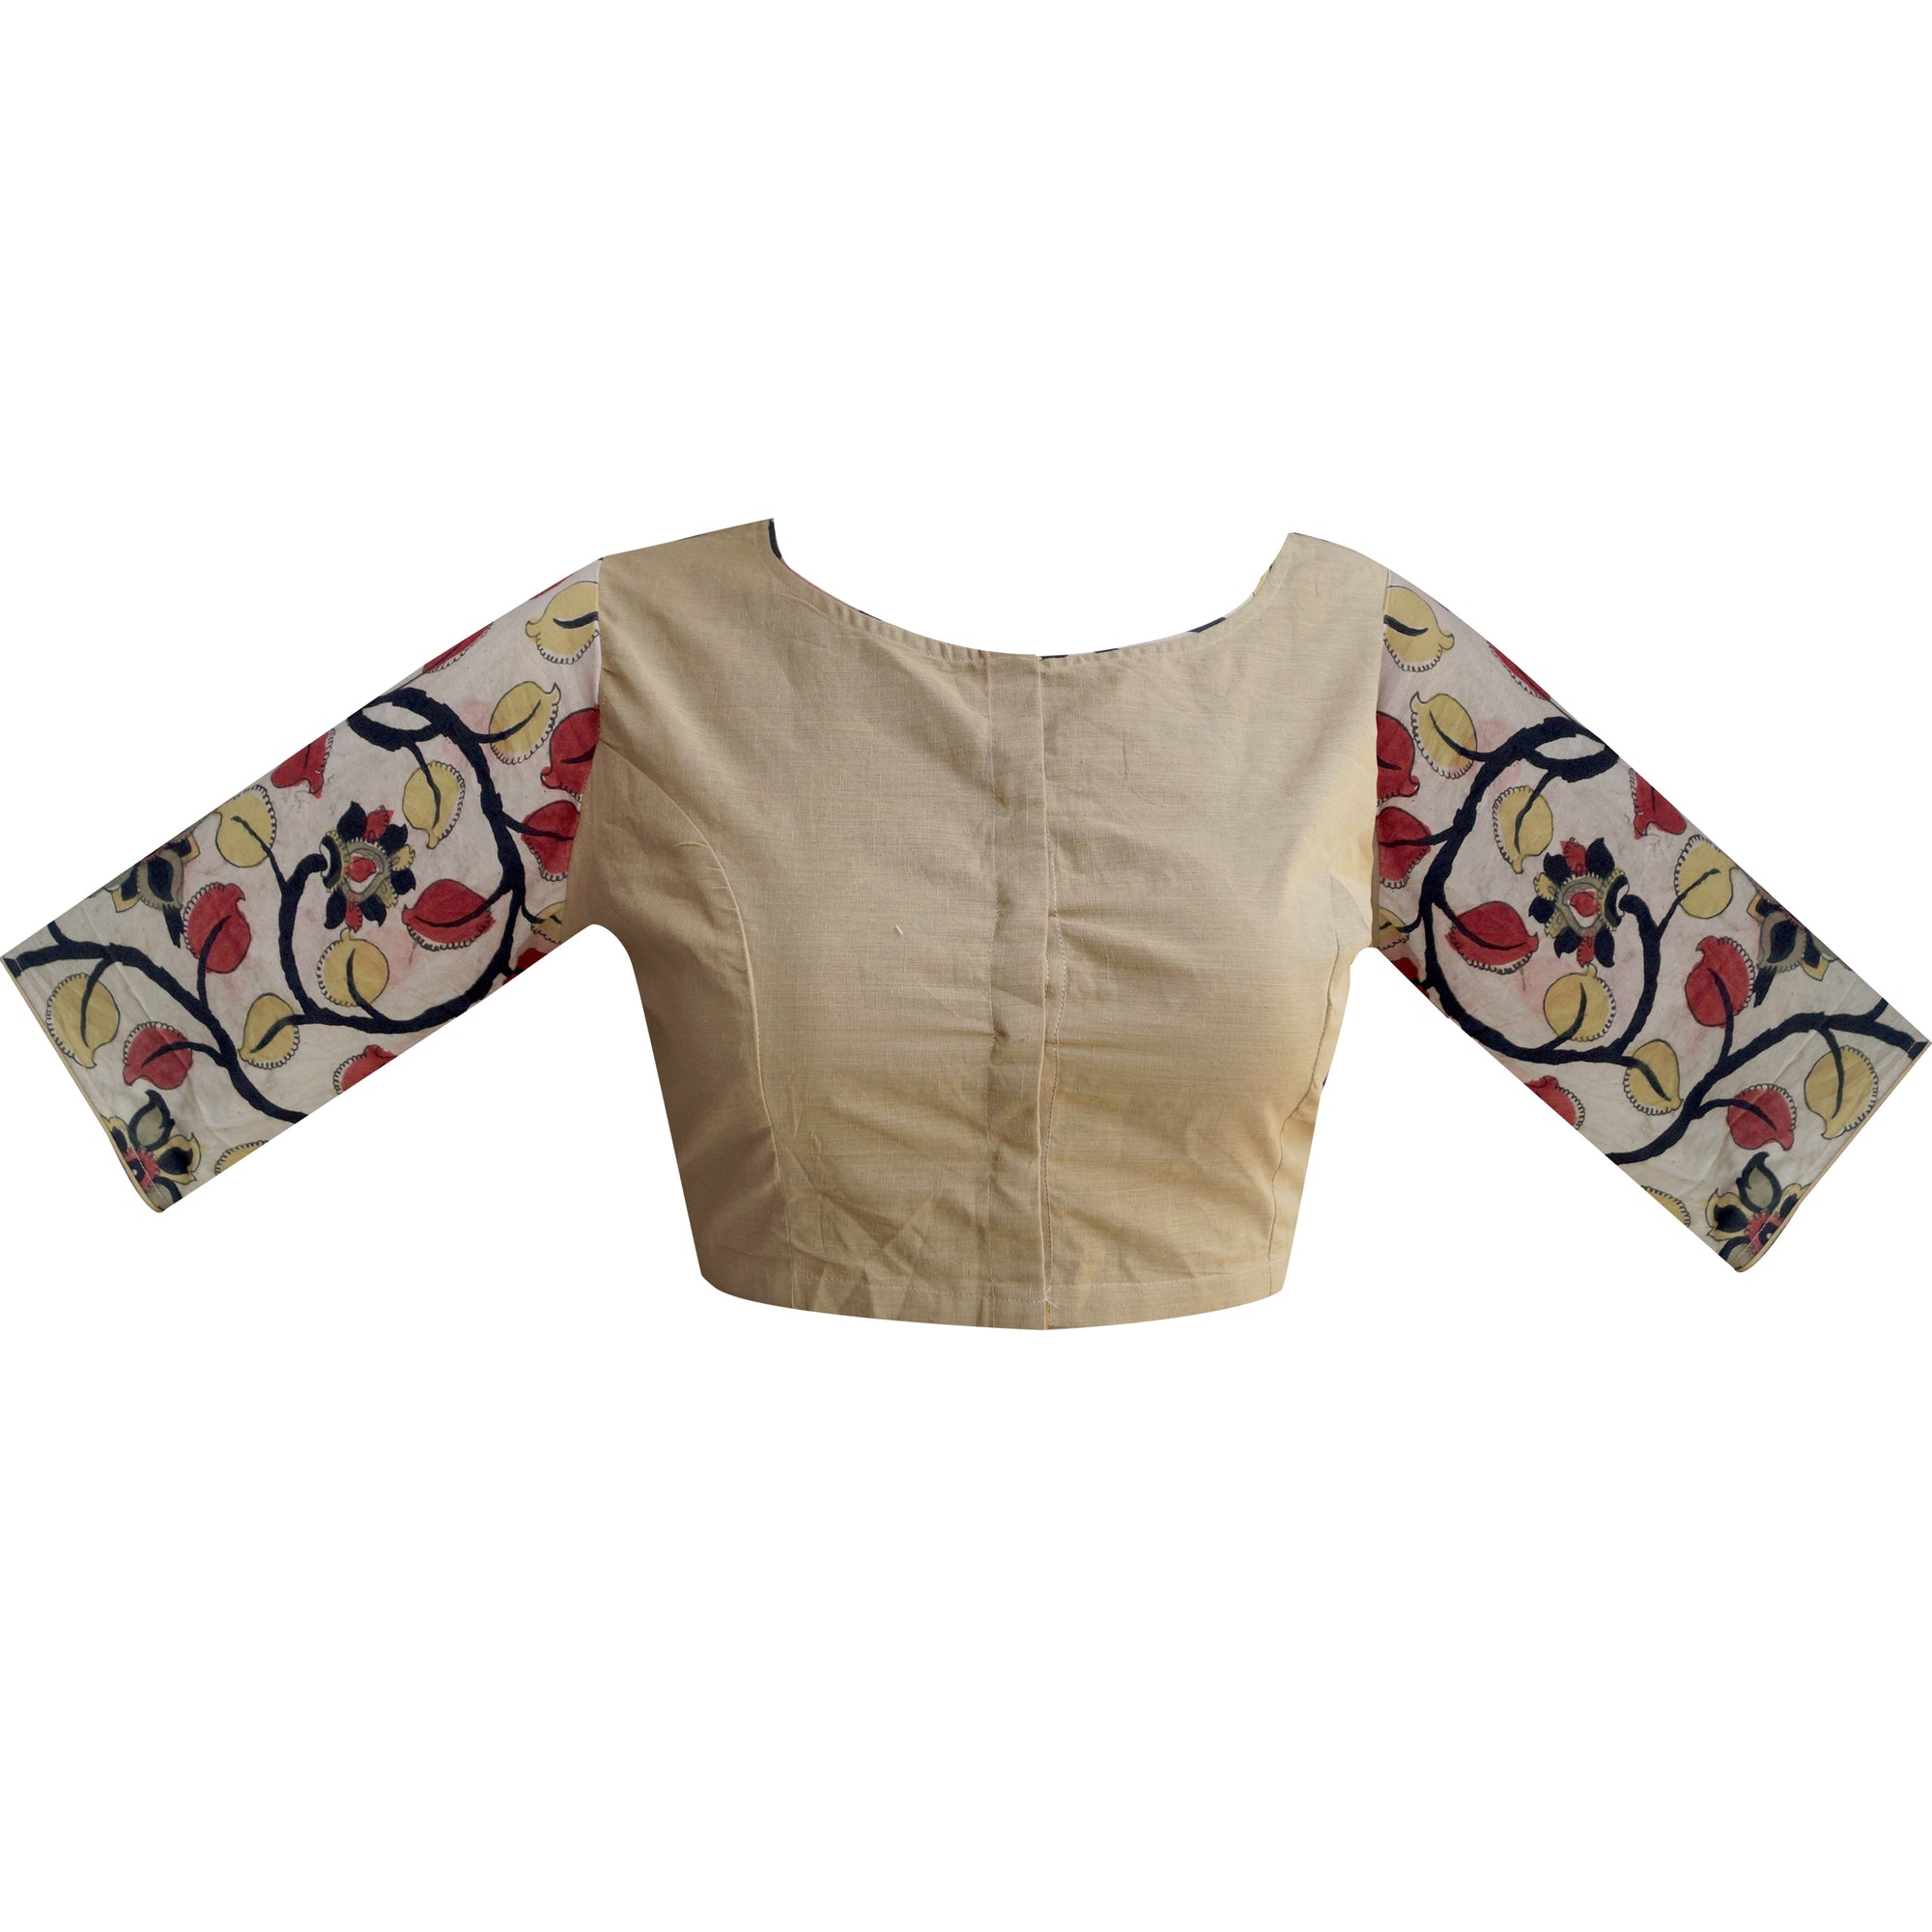 Boat Neck South Cotton & Pen Kalamkari Elbow Sleeves Readymade Blouse